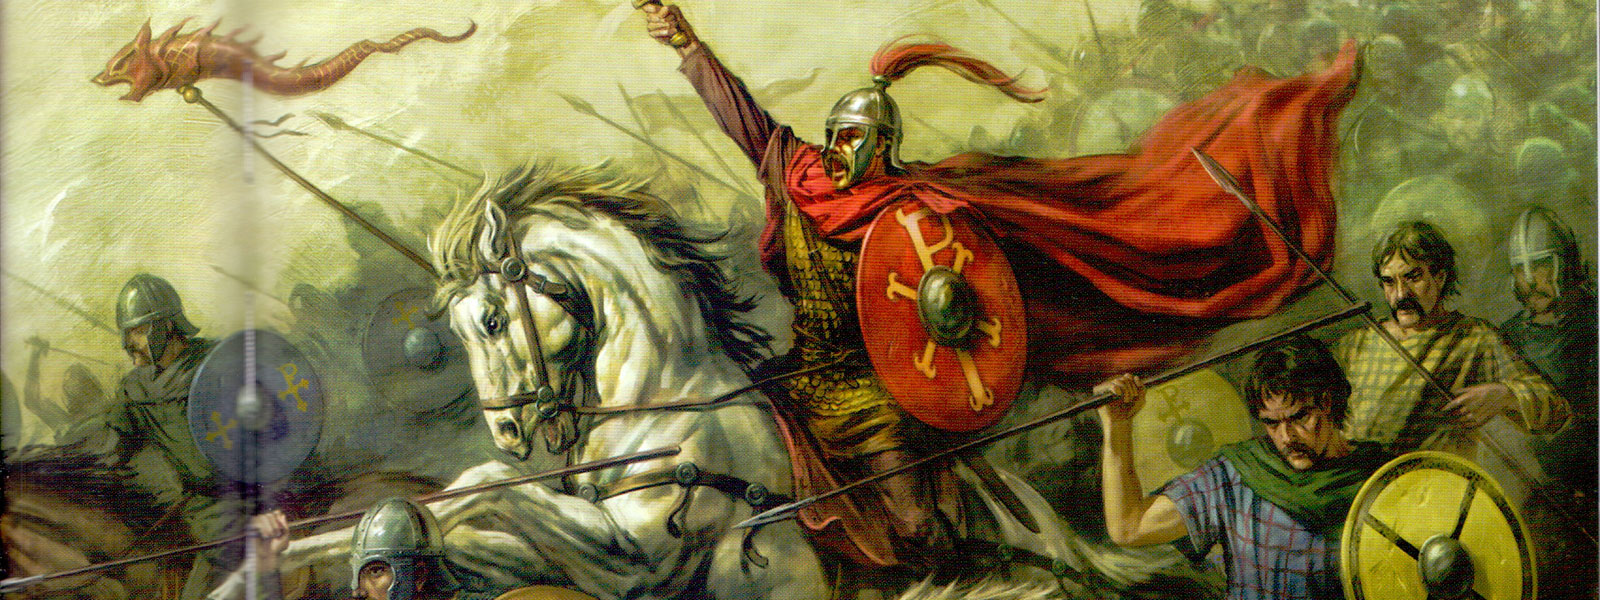 King Arthur, real or not, riding into battle.